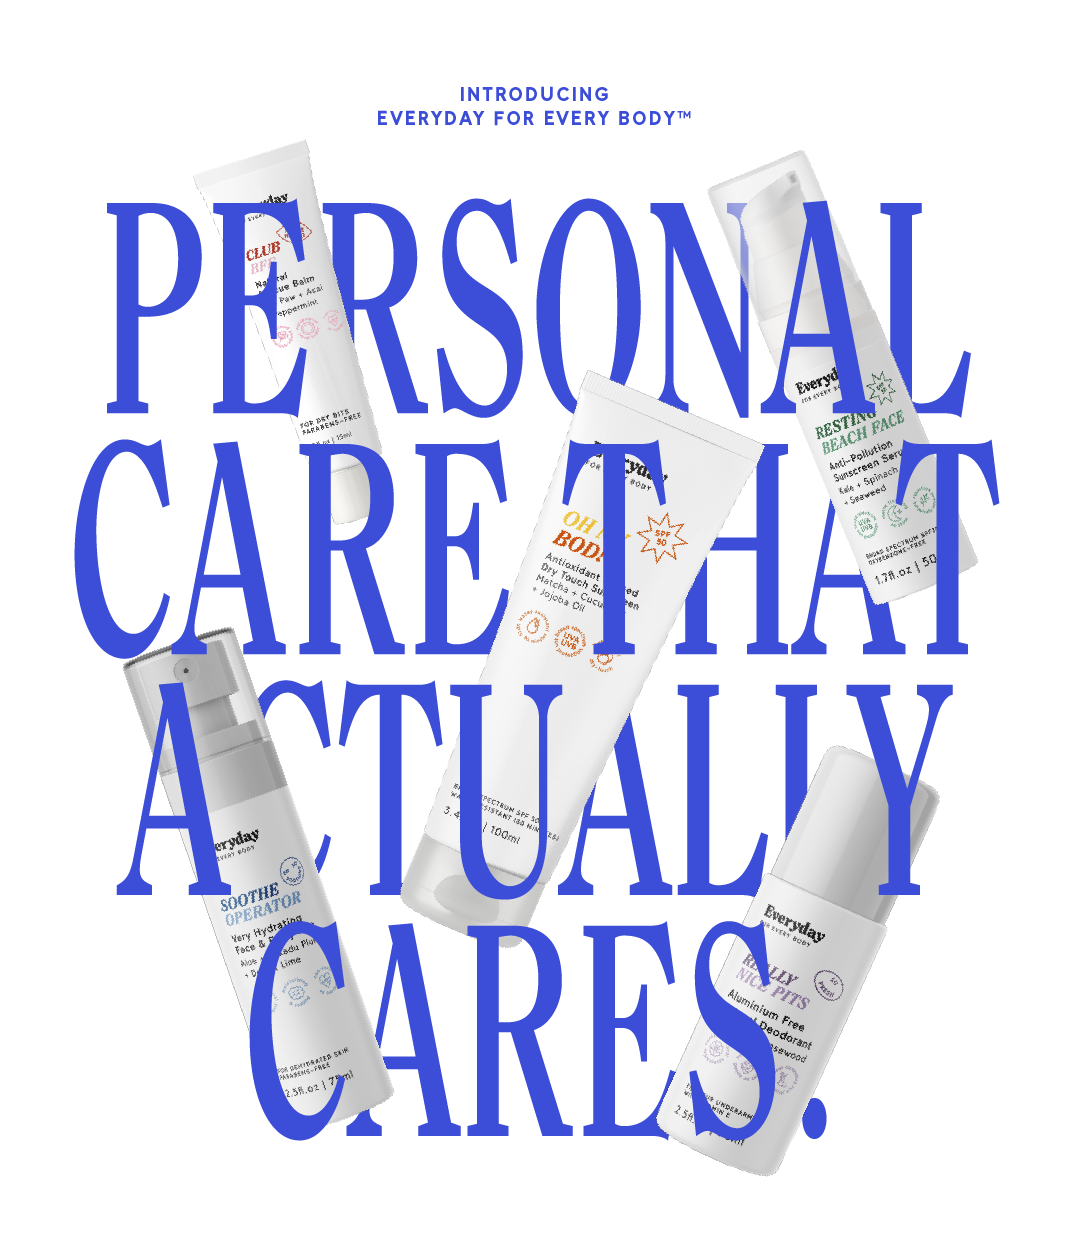 A personal care brand that actually cares.